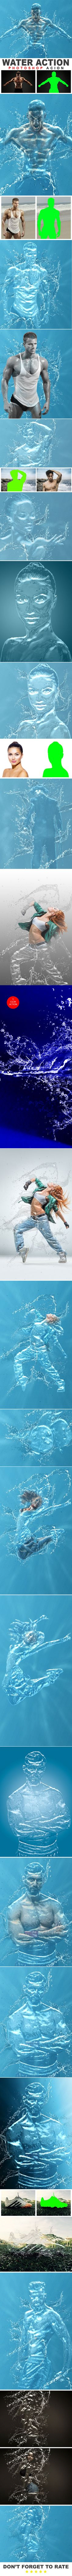 Water Photoshop Action